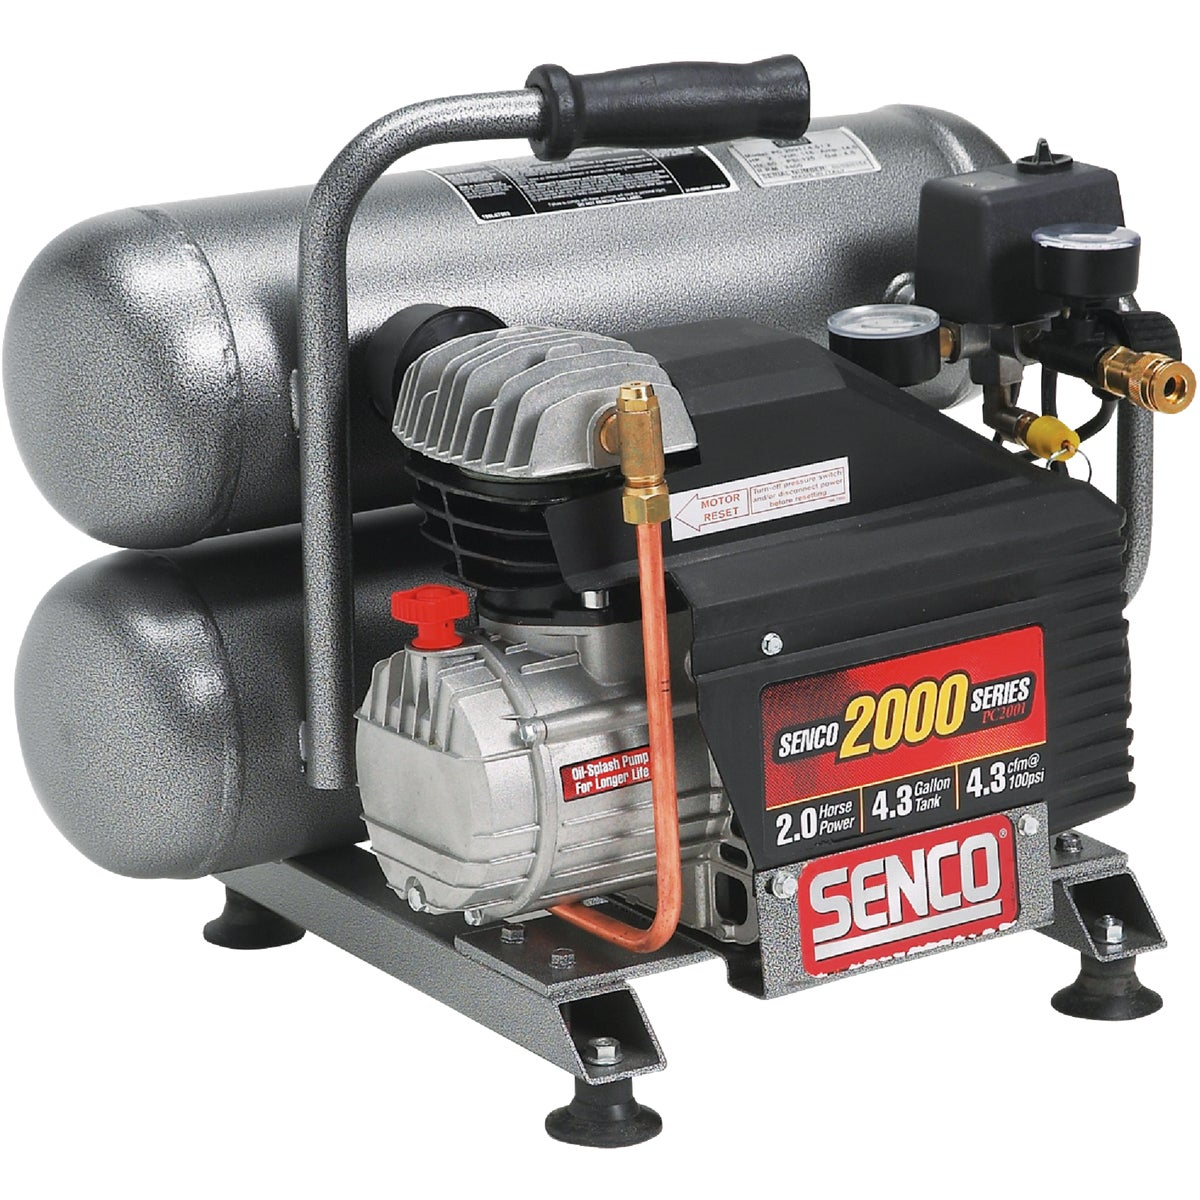 2.5HP 4.3GAL COMPRESSOR - PC1131 by Senco Brands